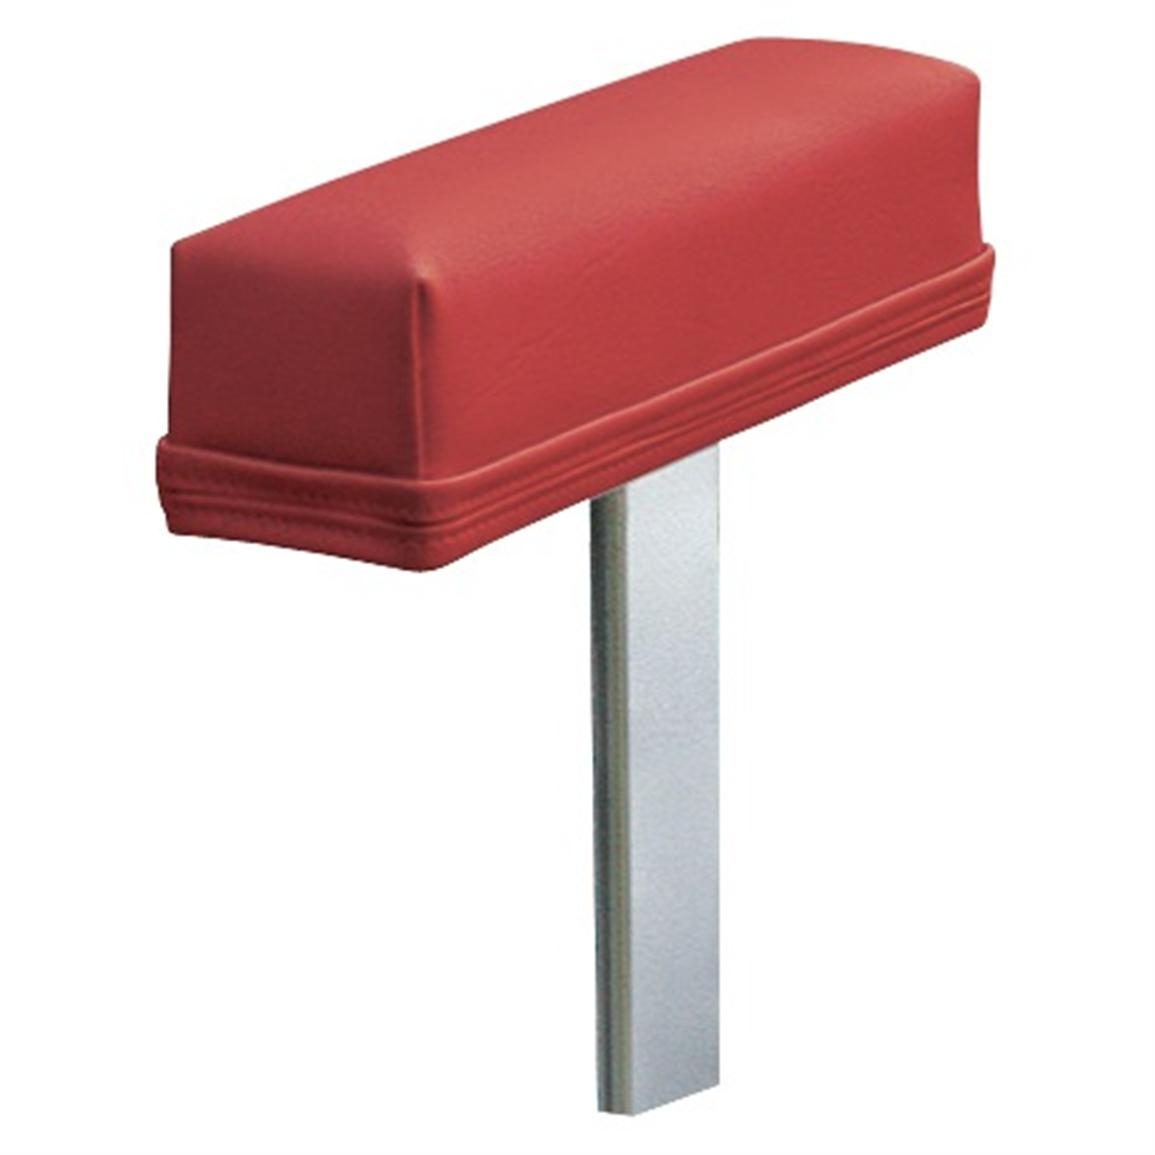 Armrests for Wise® Fishing Boat Seats, Red